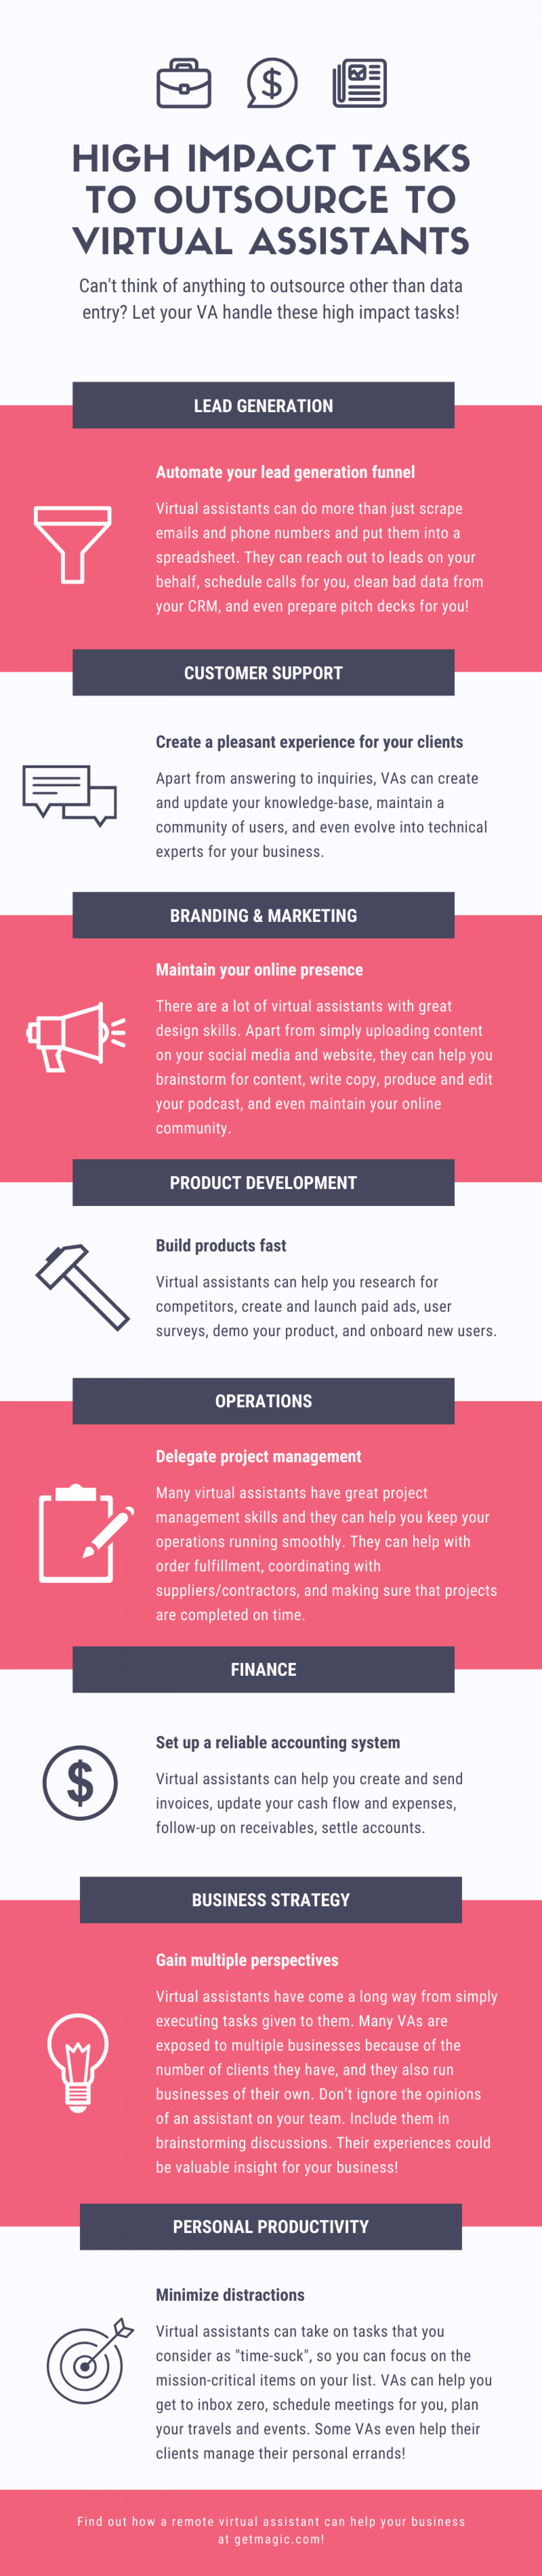 High Impact Tasks and Projects to Outsource to Virtual Assistants Infographic